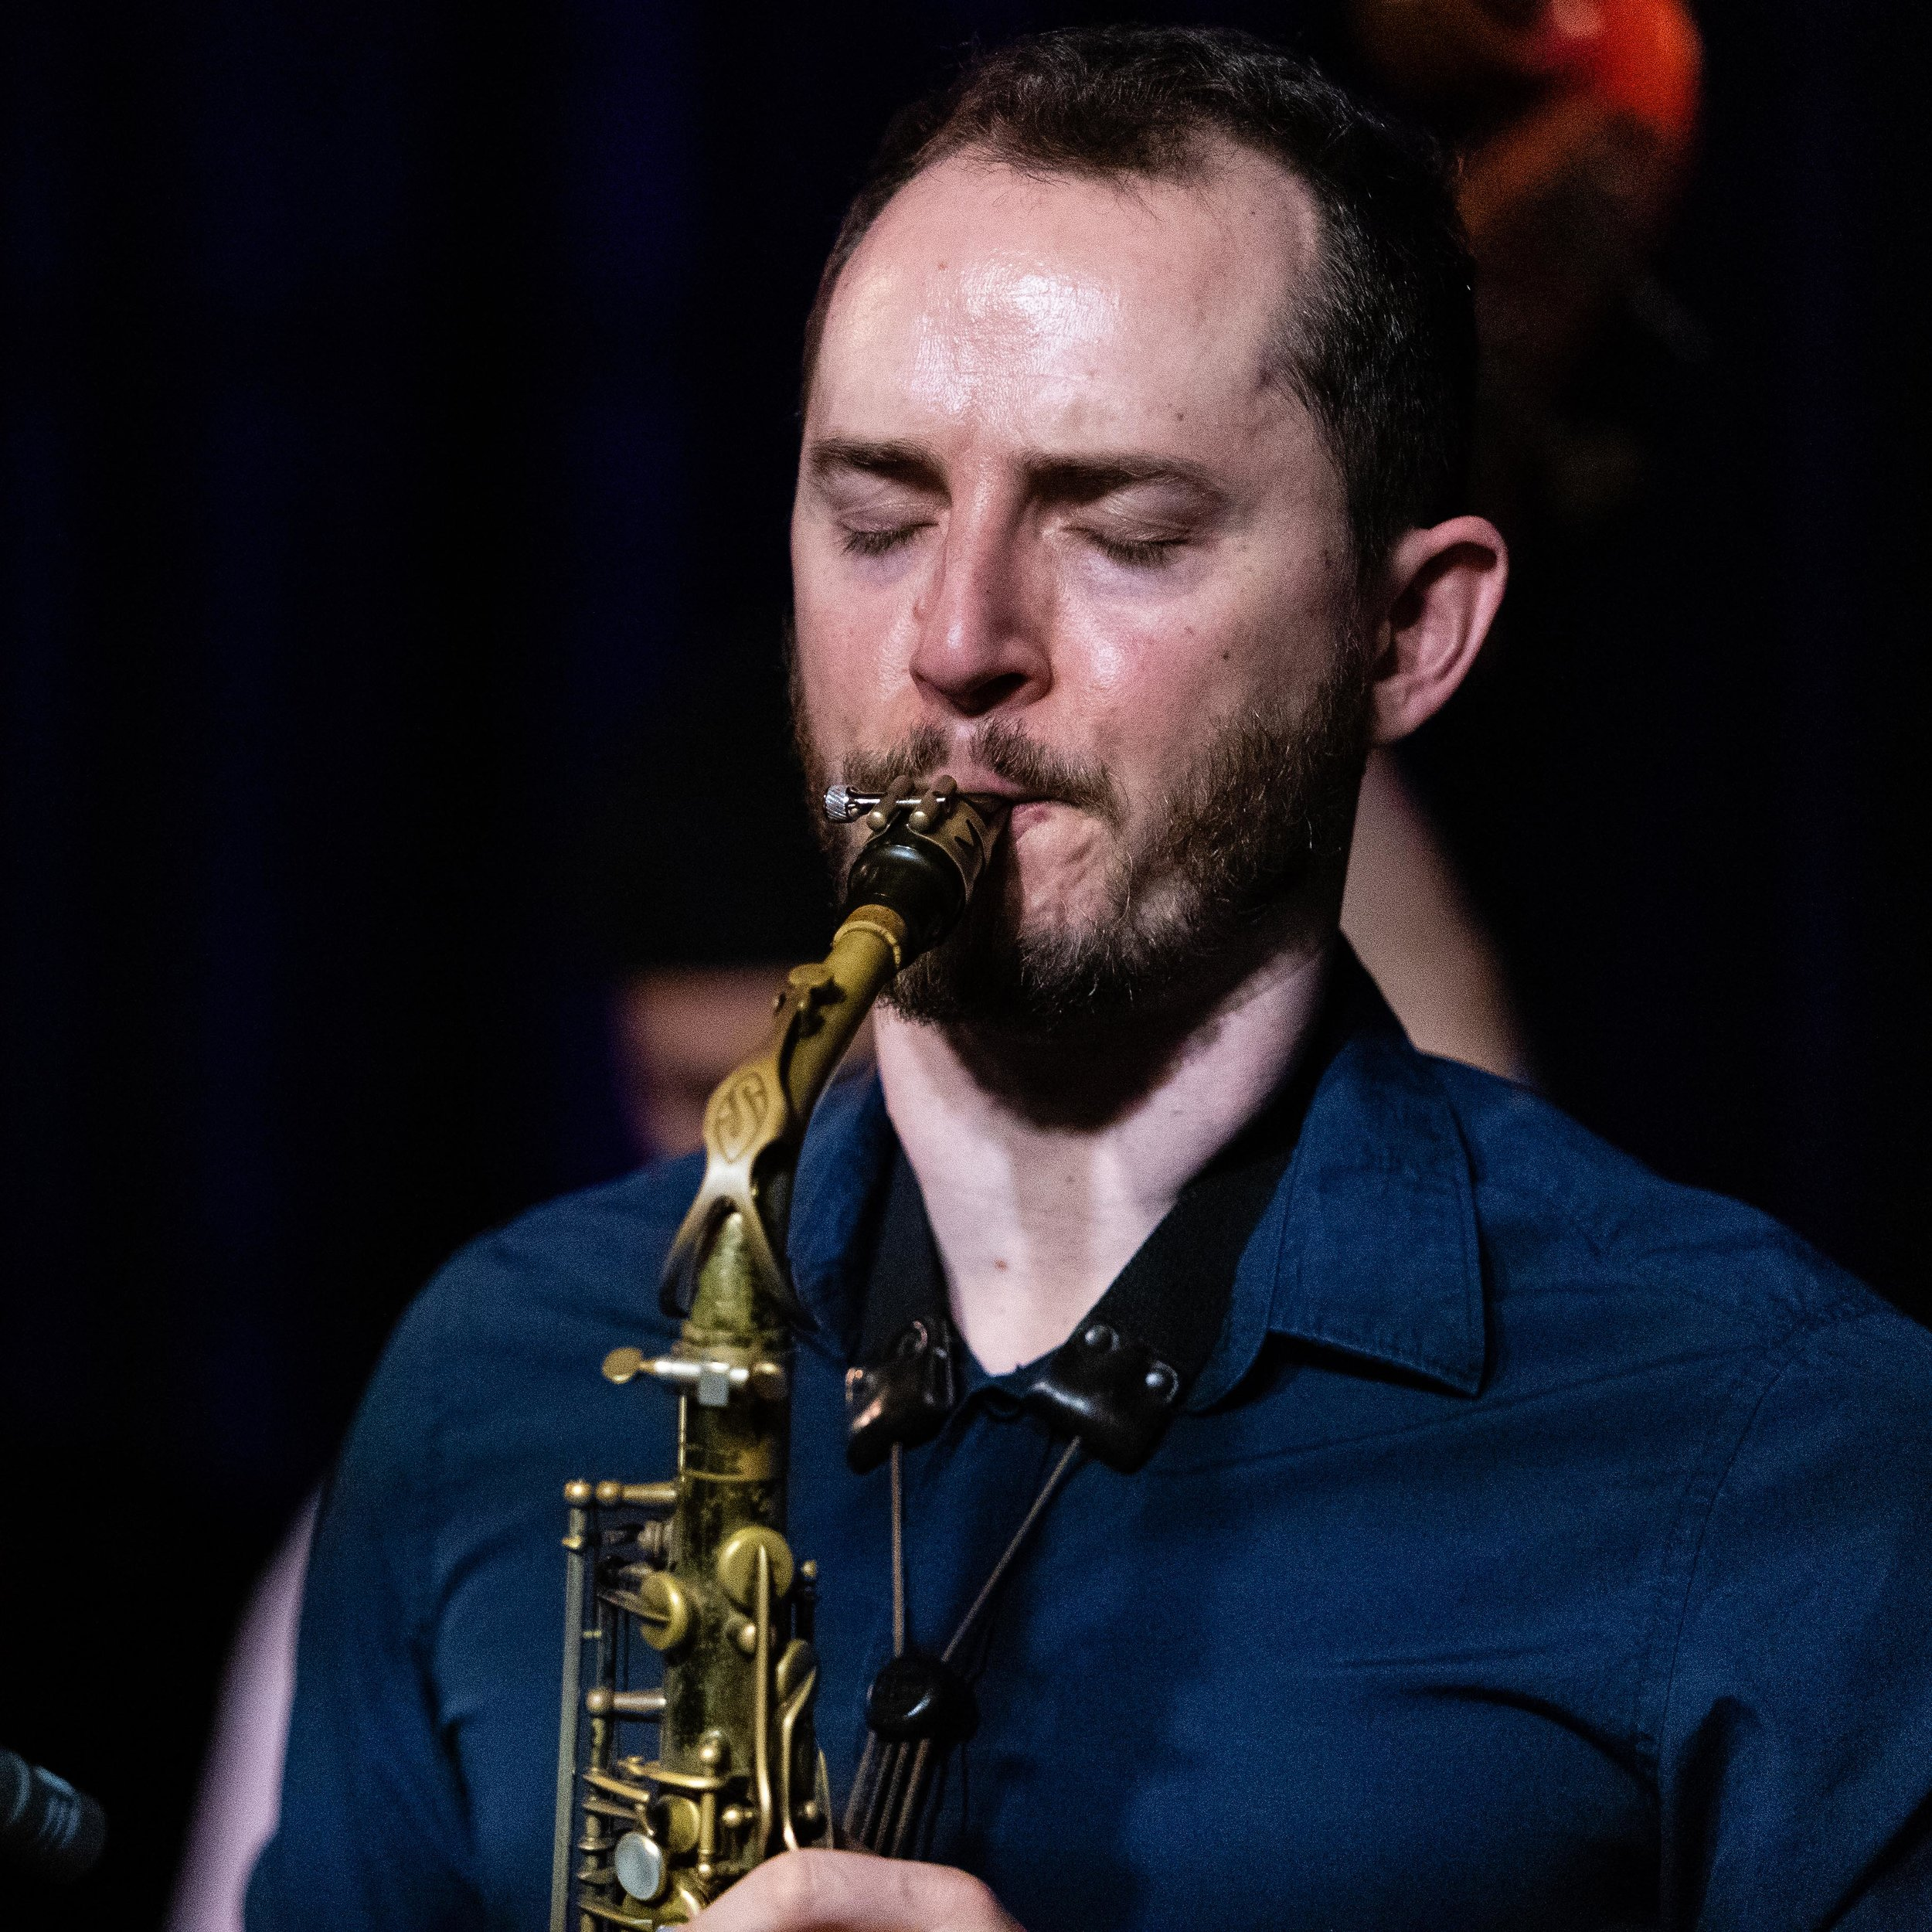 Remy Le Boeuf on saxophone at The Nash Jazz Club in Phoenix, Arizona.